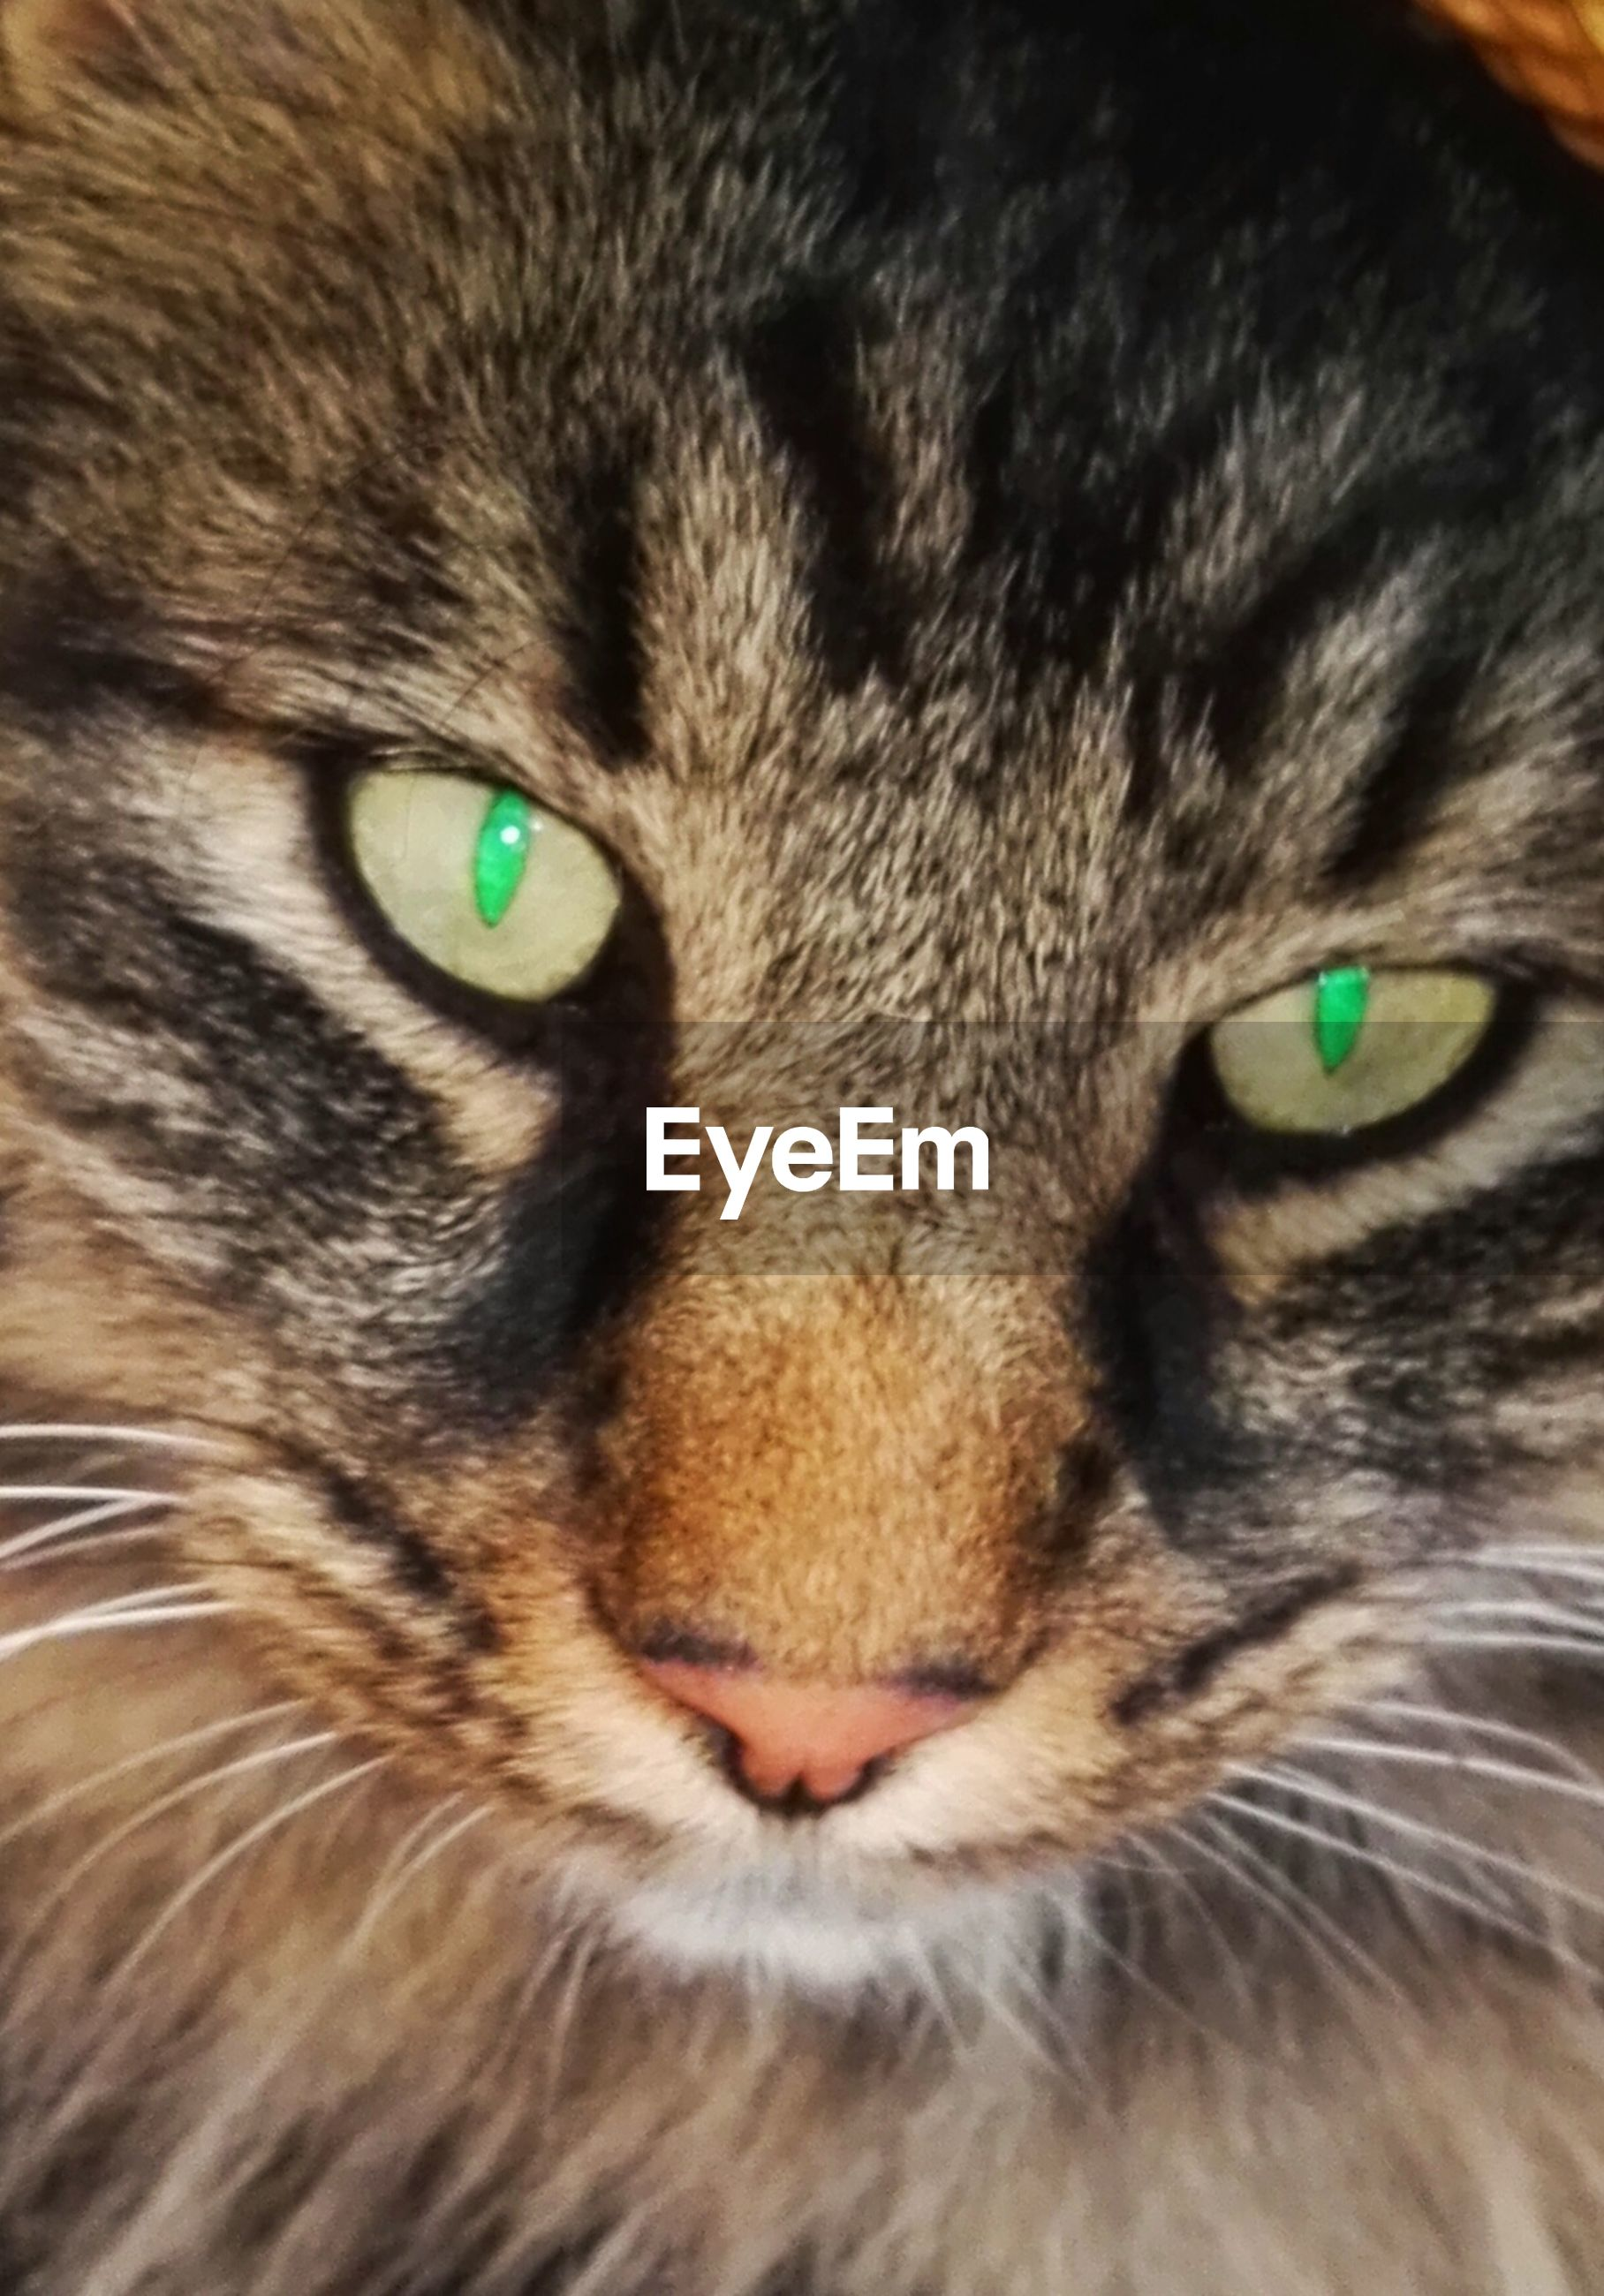 animal themes, one animal, domestic cat, domestic animals, cat, whisker, close-up, pets, backgrounds, mammal, looking at camera, feline, animal eye, full frame, animal head, alertness, focus on foreground, no people, green color, extreme close up, animal, snout, animal hair